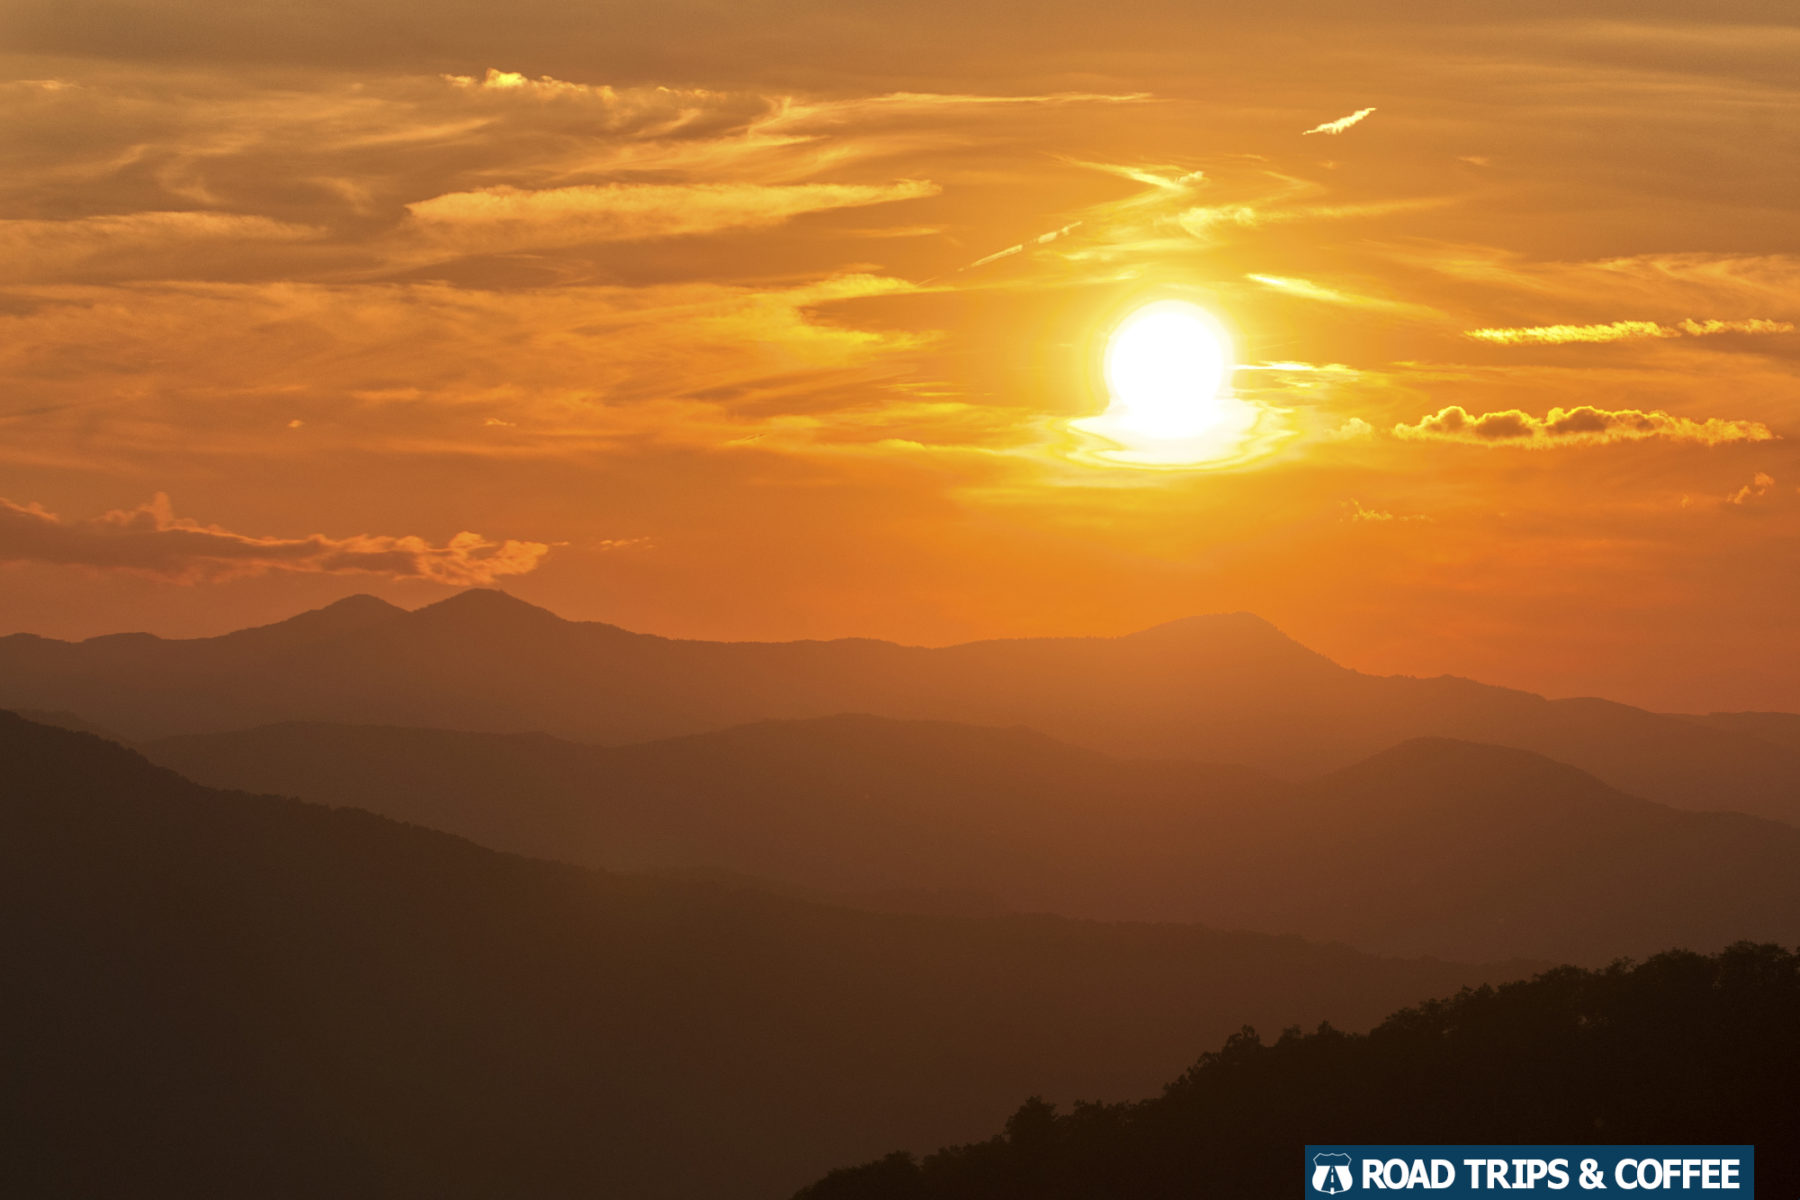 Warm sunset view across the mountain landscape from the Mount Pisgah Overlook on the Blue Ridge Parkway in North Carolina